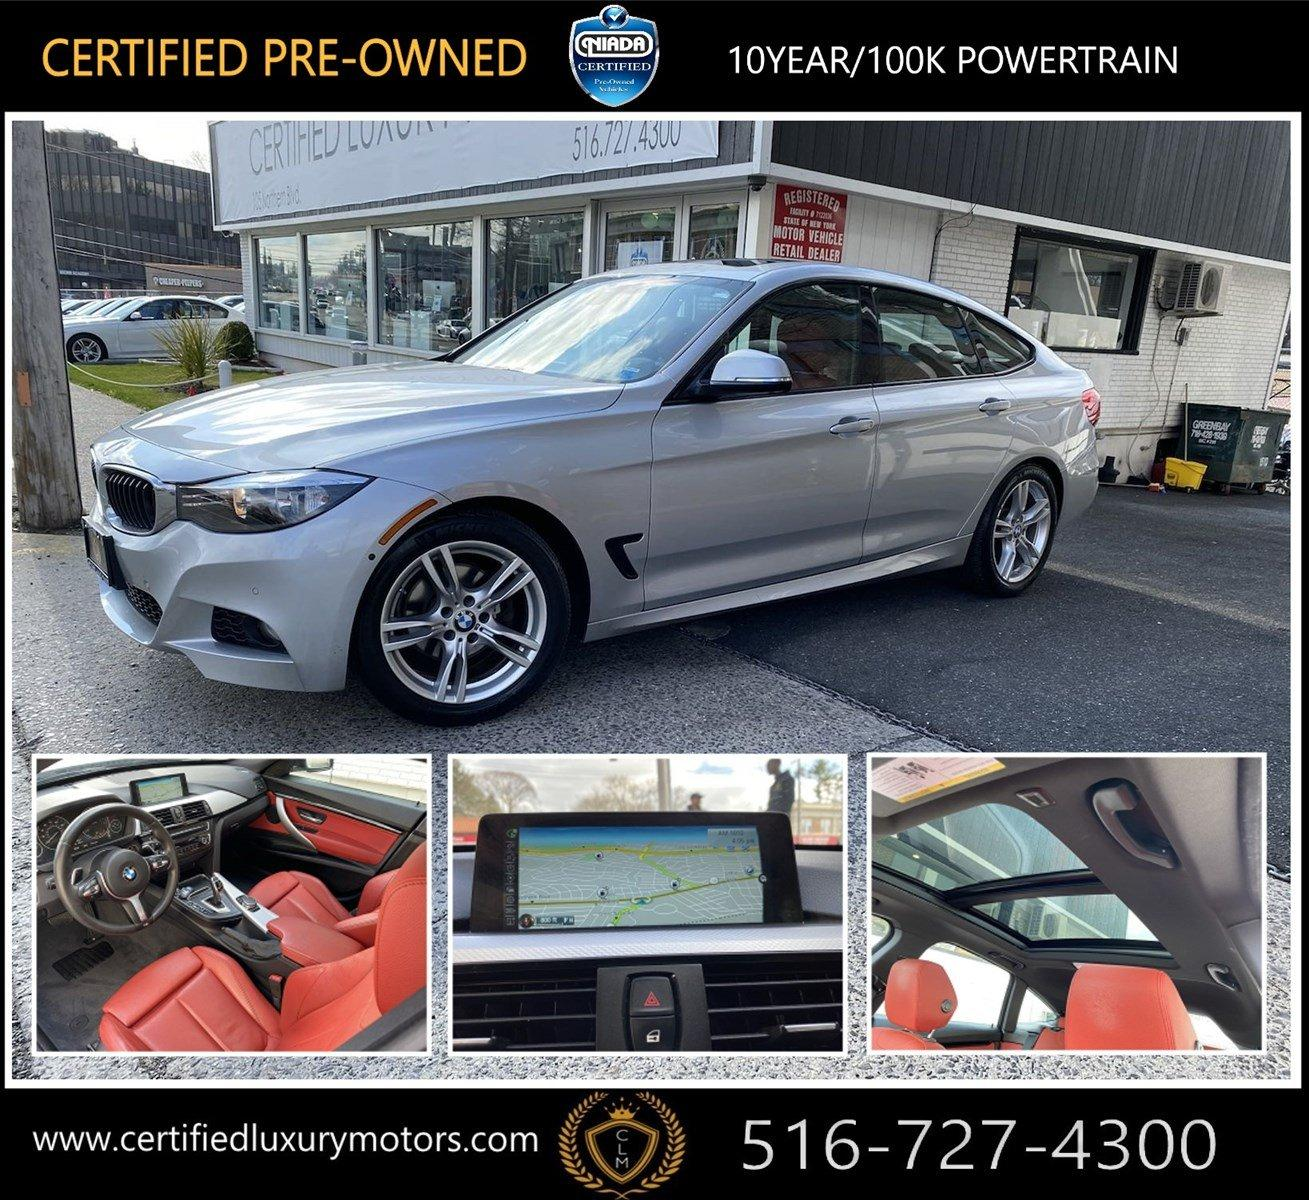 2016 BMW 3 Series Gran Turismo 328i XDrive Stock # C0698